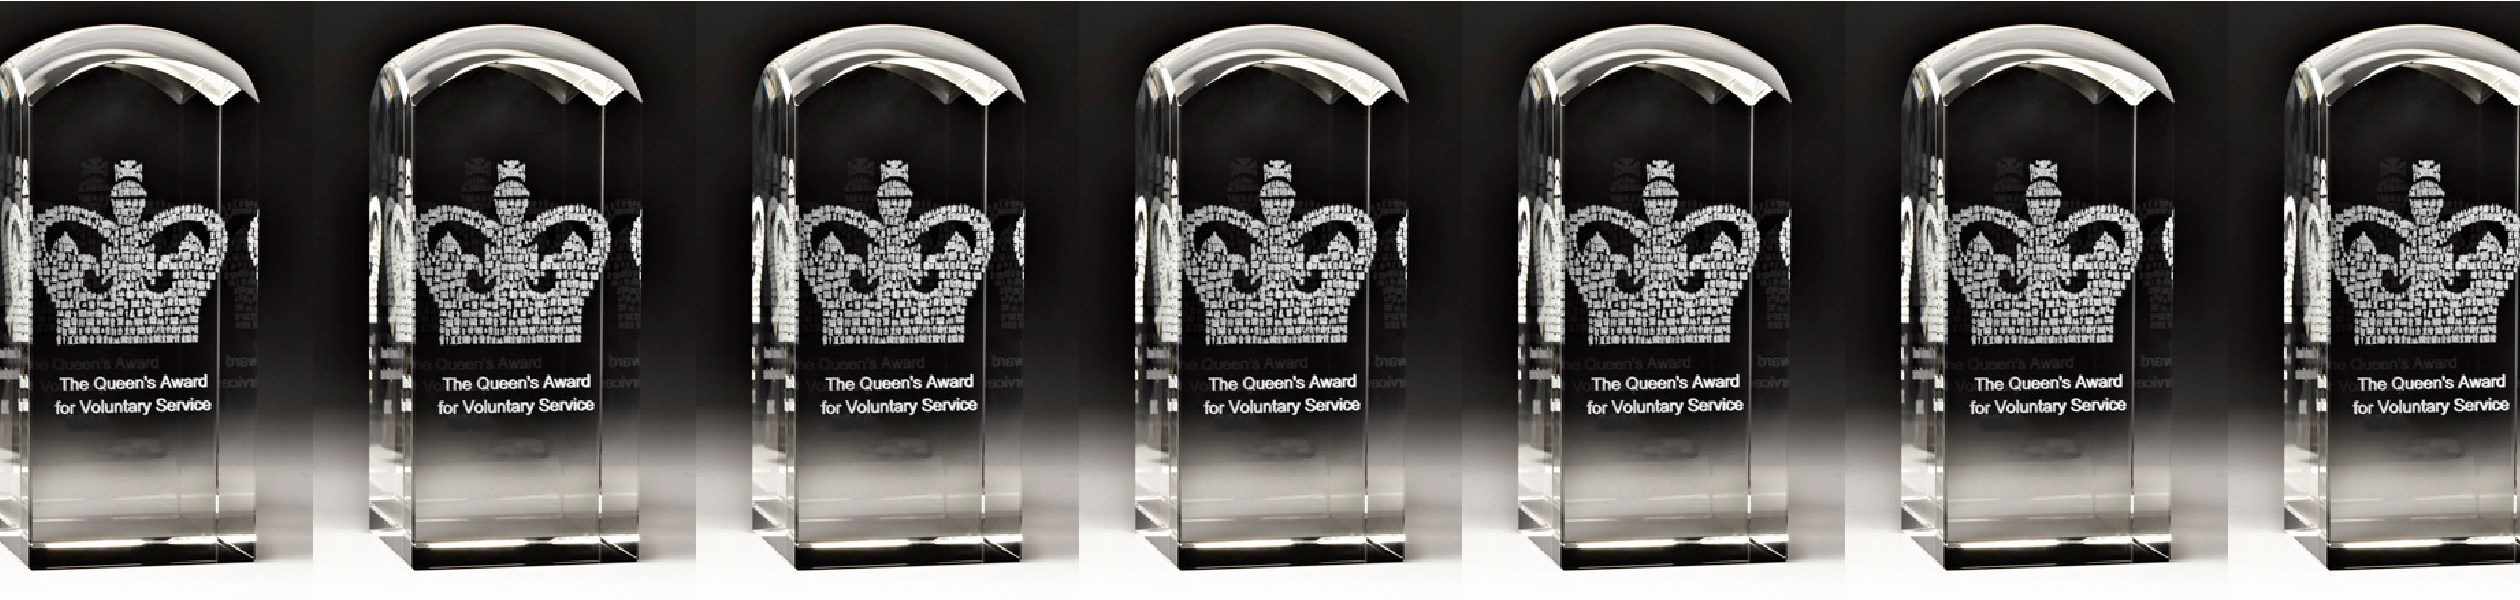 Crystal Replica Queen's Award for Voluntary Service